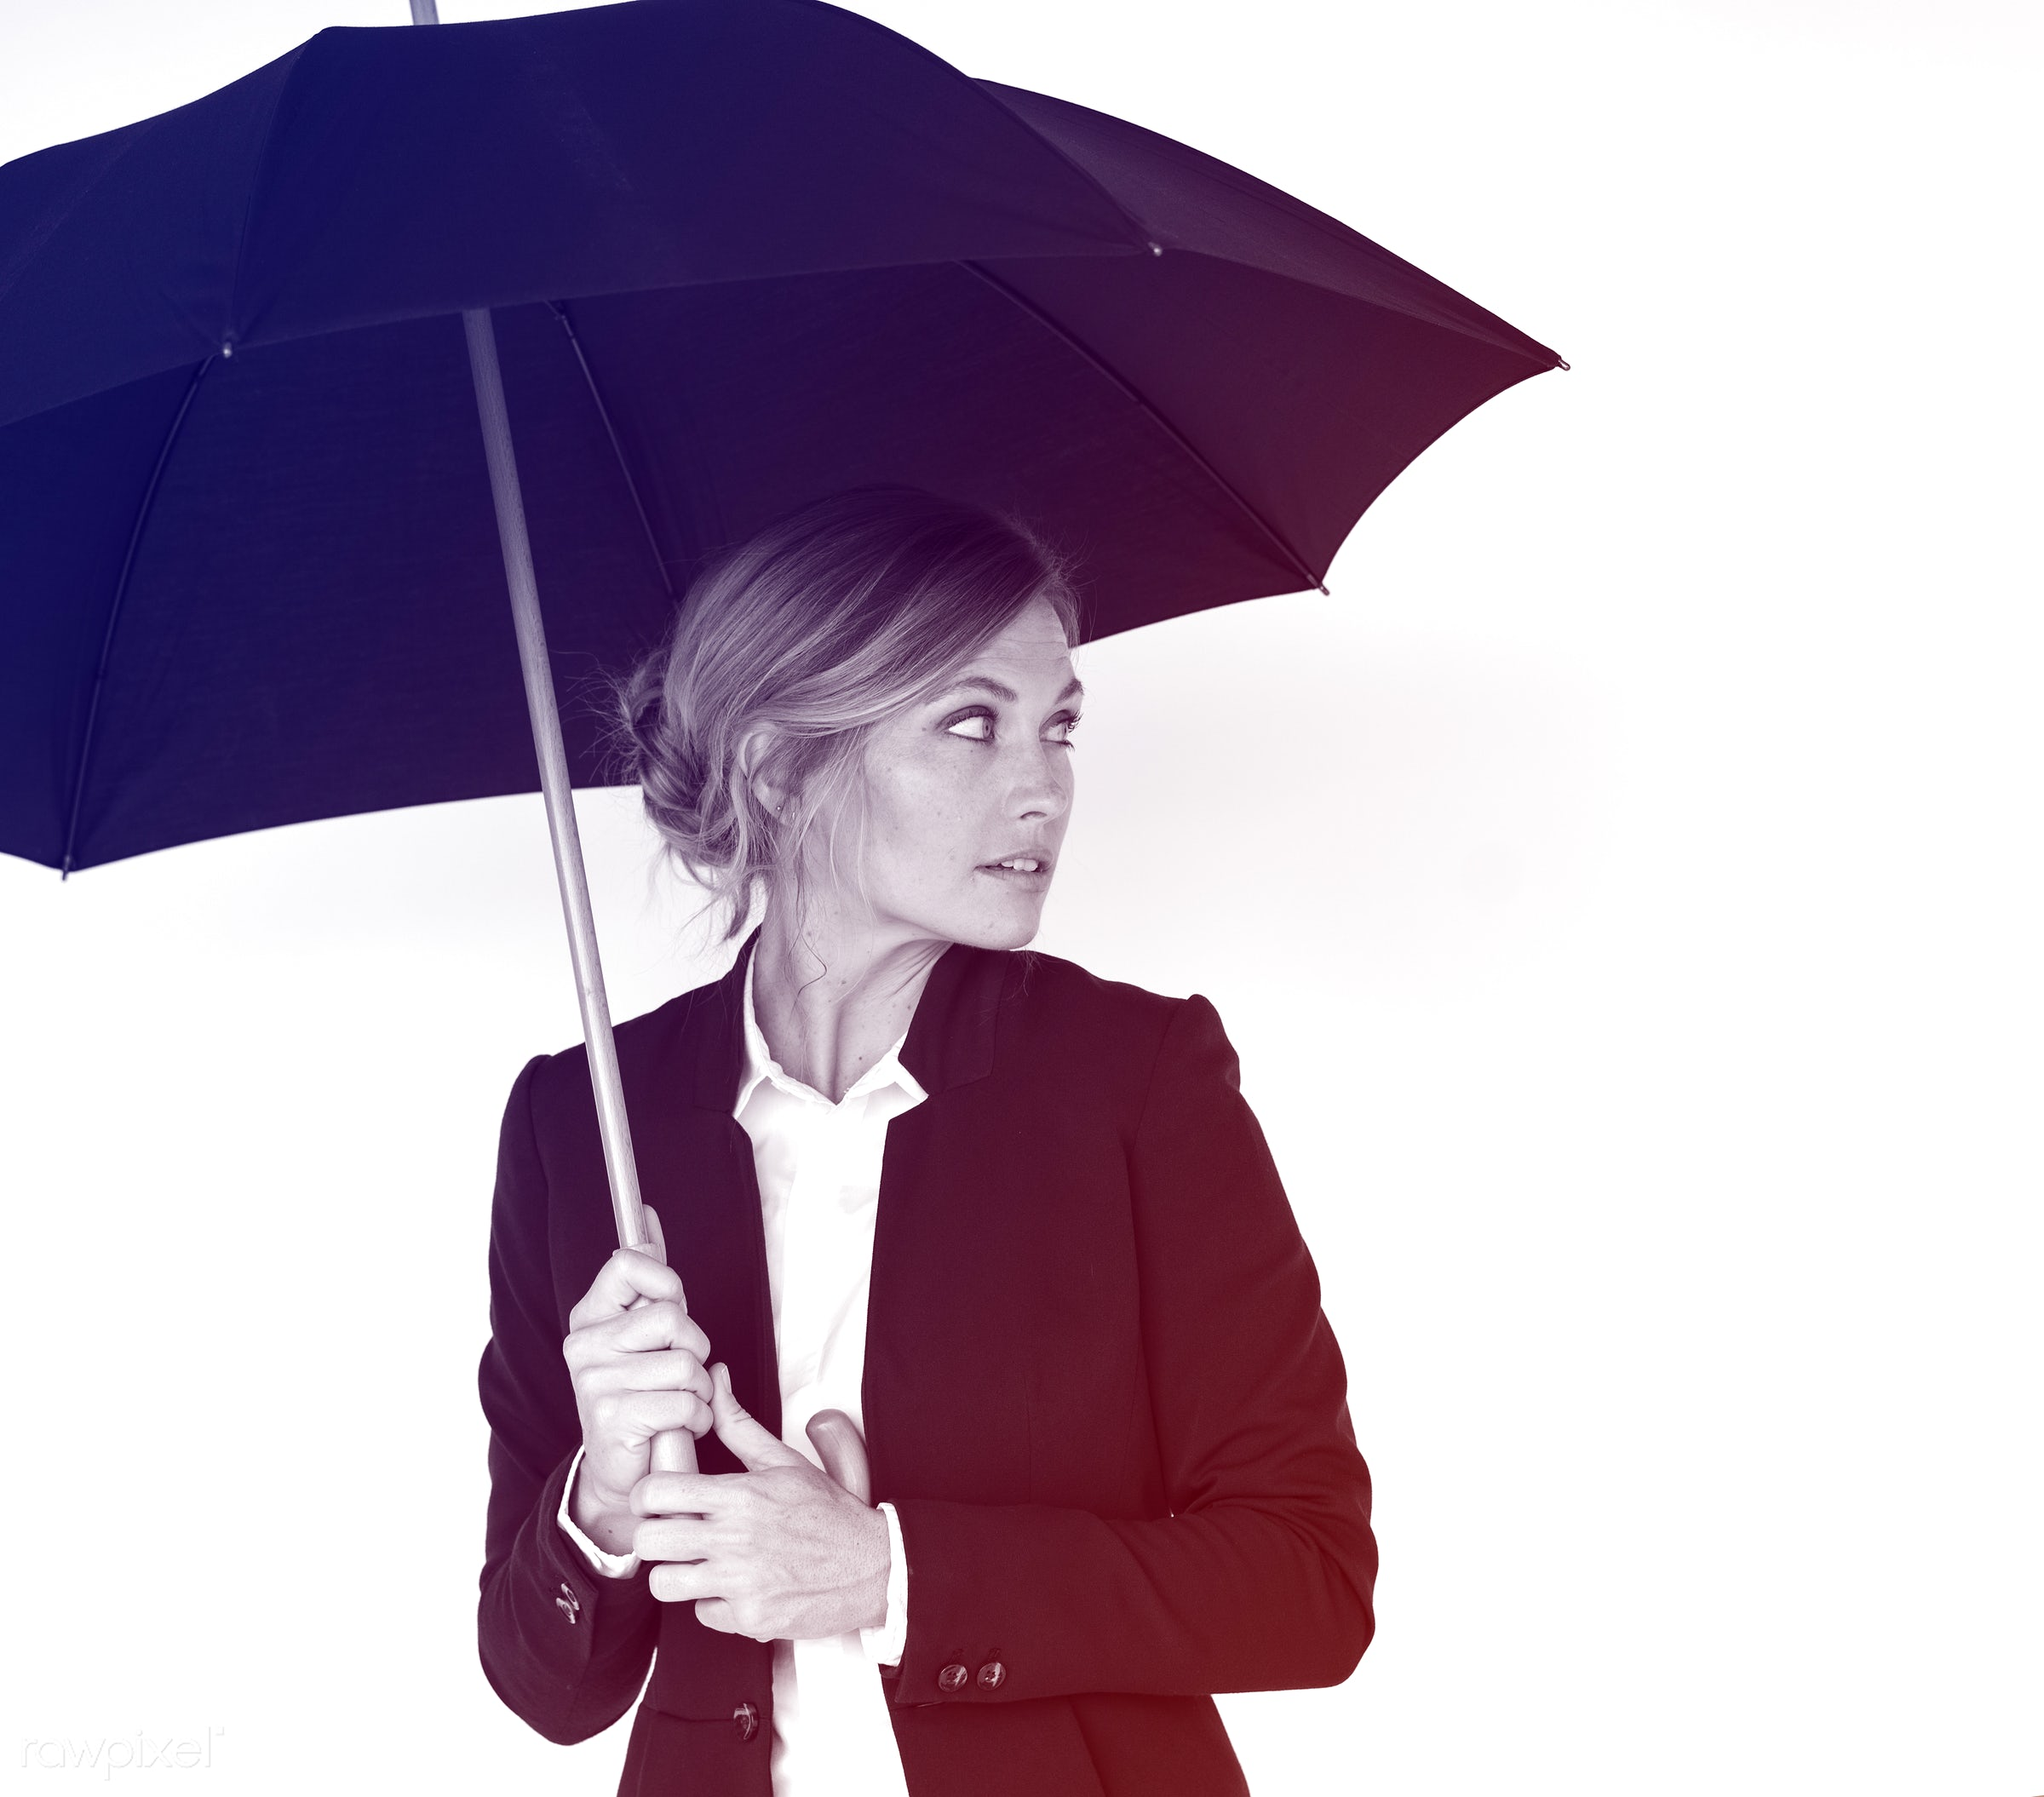 studio, expression, person, awareness, people, curious, woman, weather, alone, protection, isolated, hold, umbrella, white,...